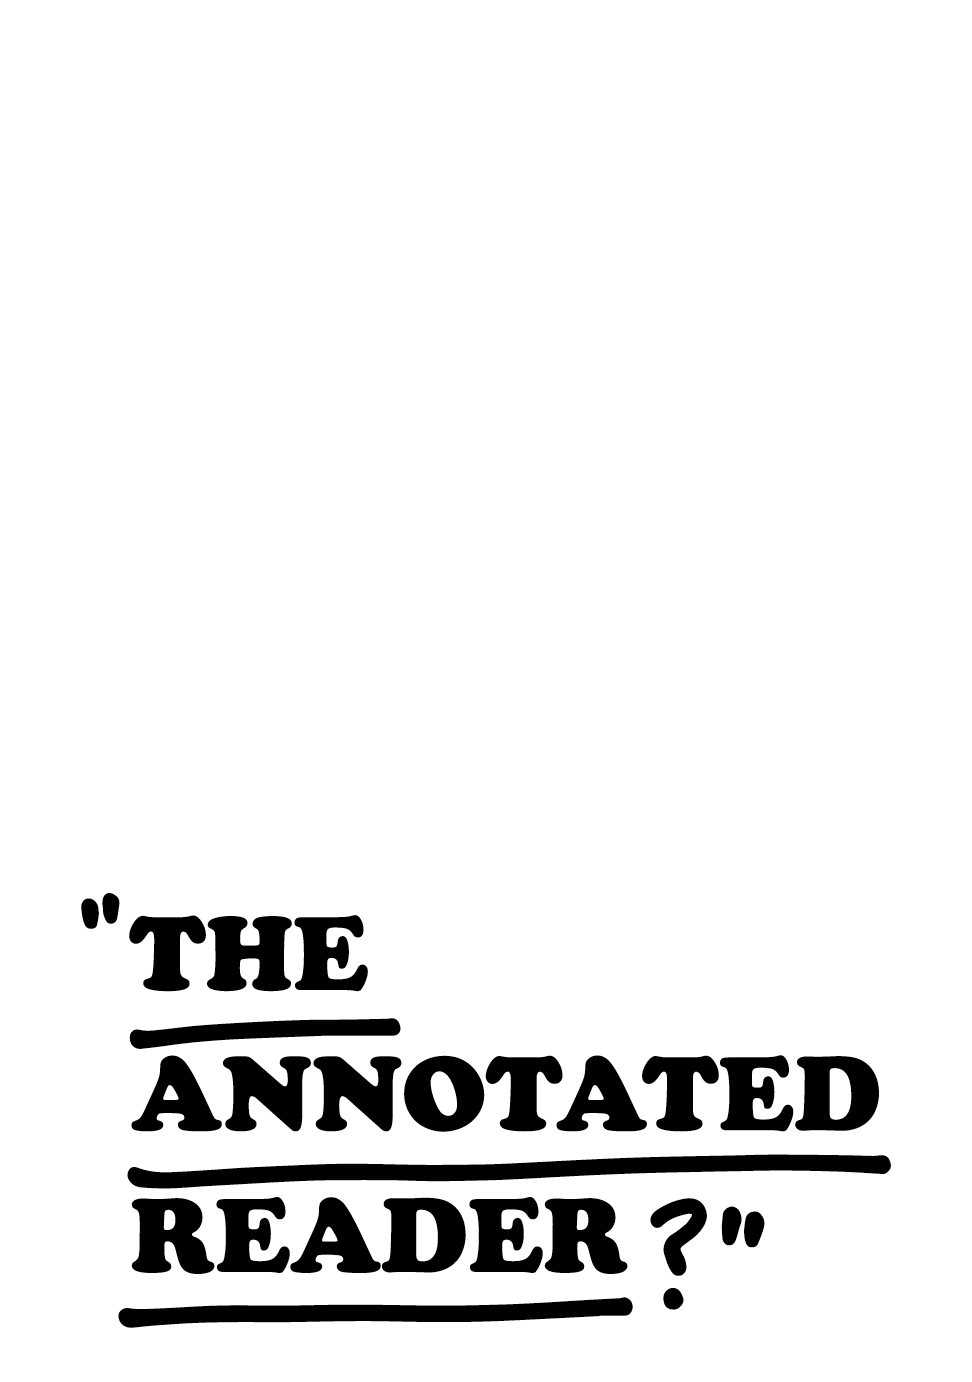 The Annotated Reader - Ryan Gander, Jonathan P. Watts, eds. 2018. With contribution by Samson Young.MORE INFO HERE